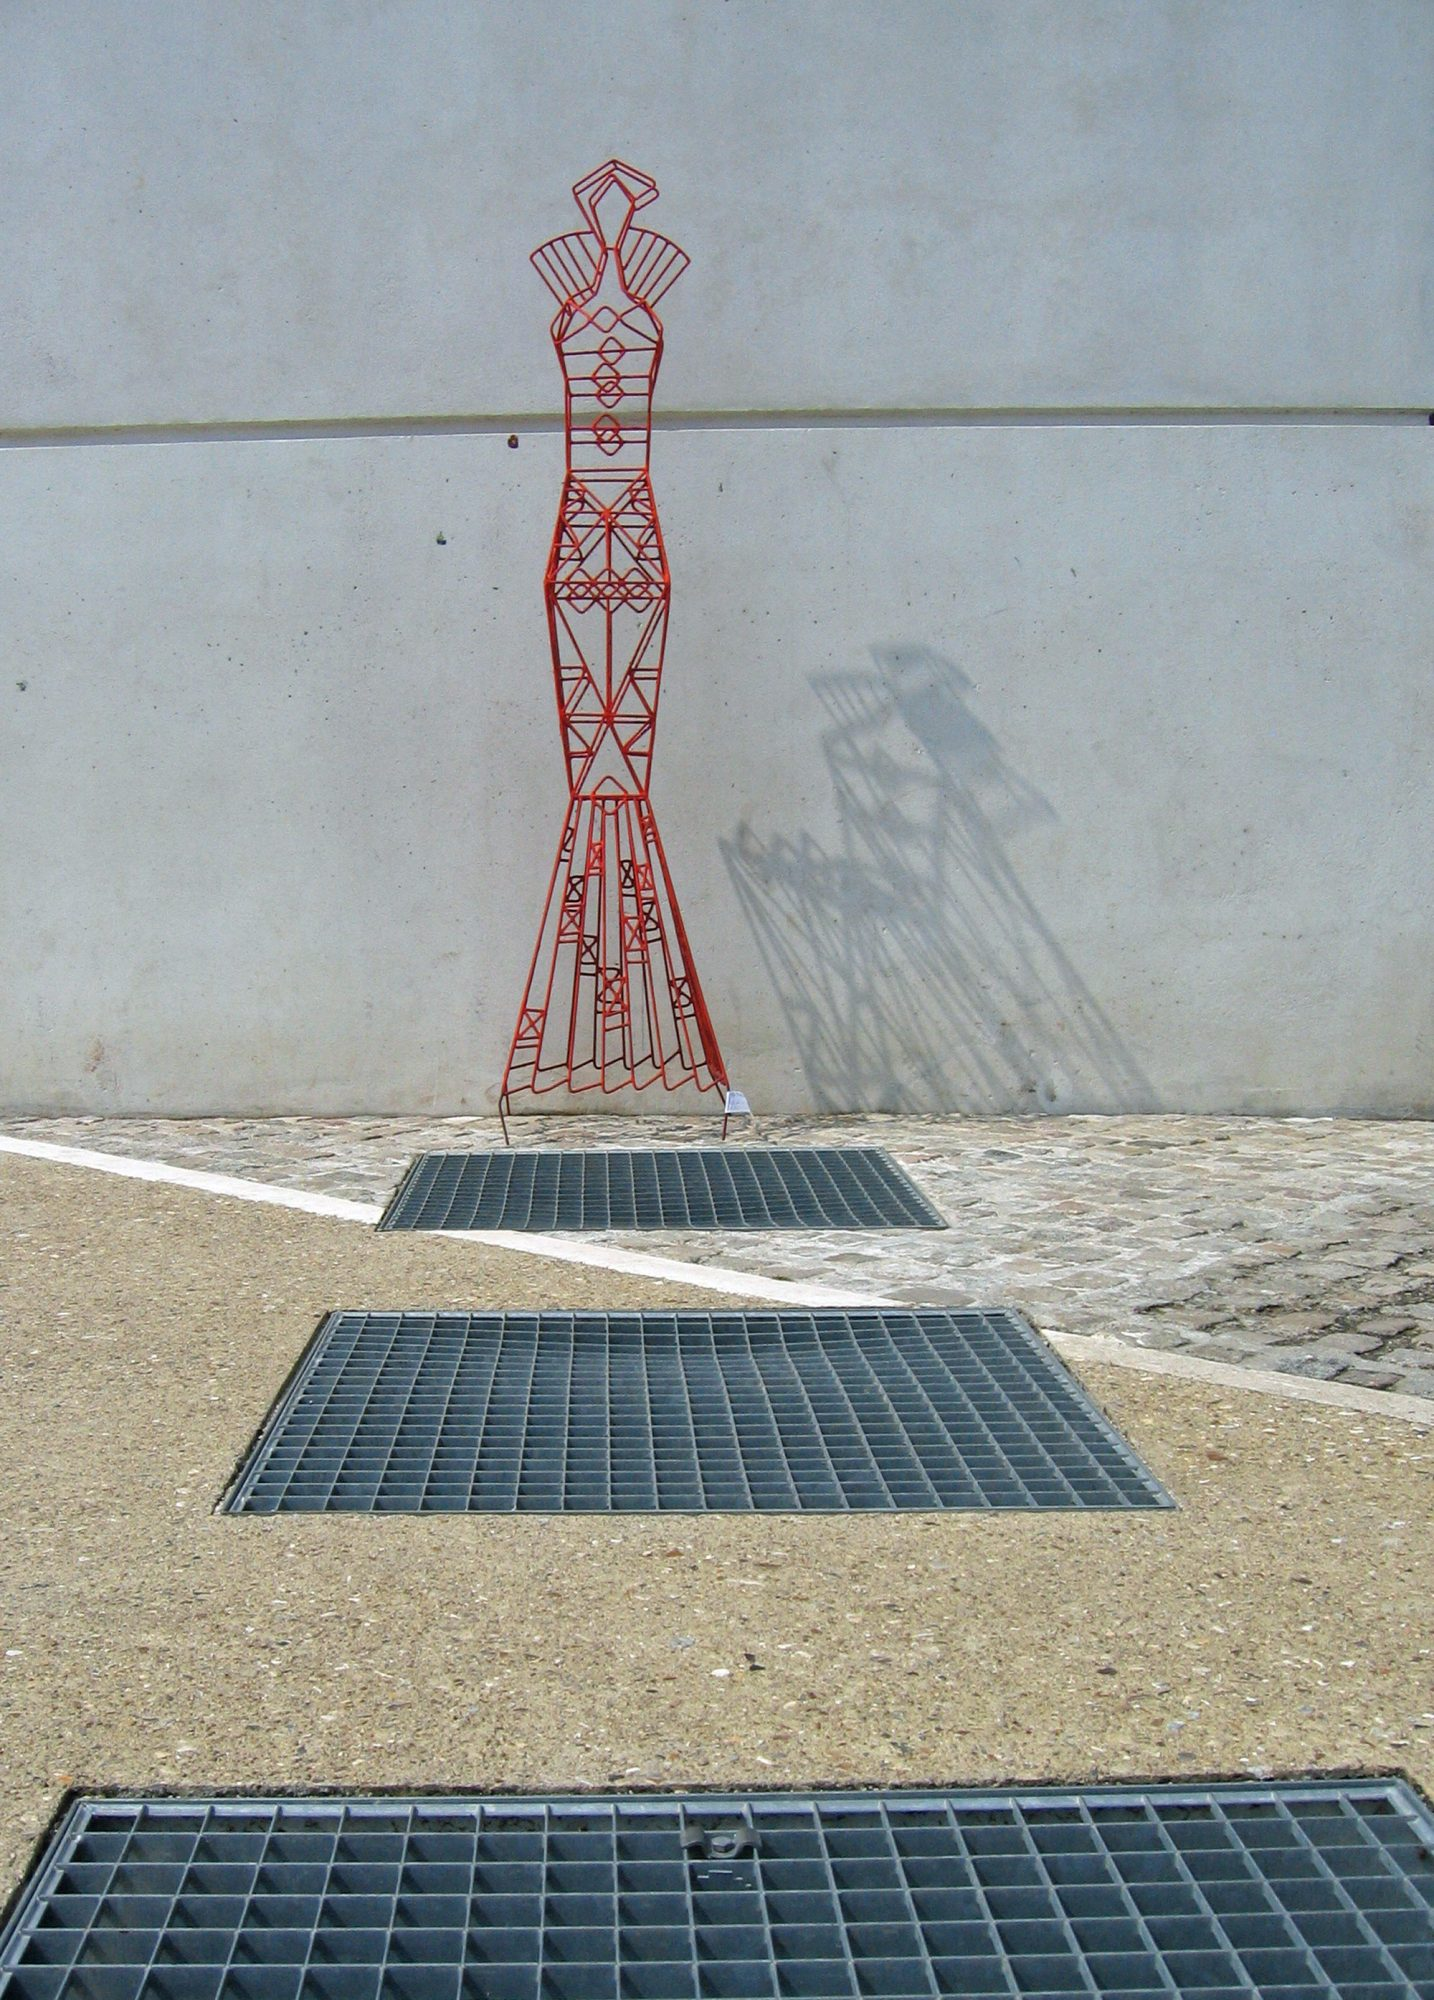 Colombe, Wind-Mast-Sculpture